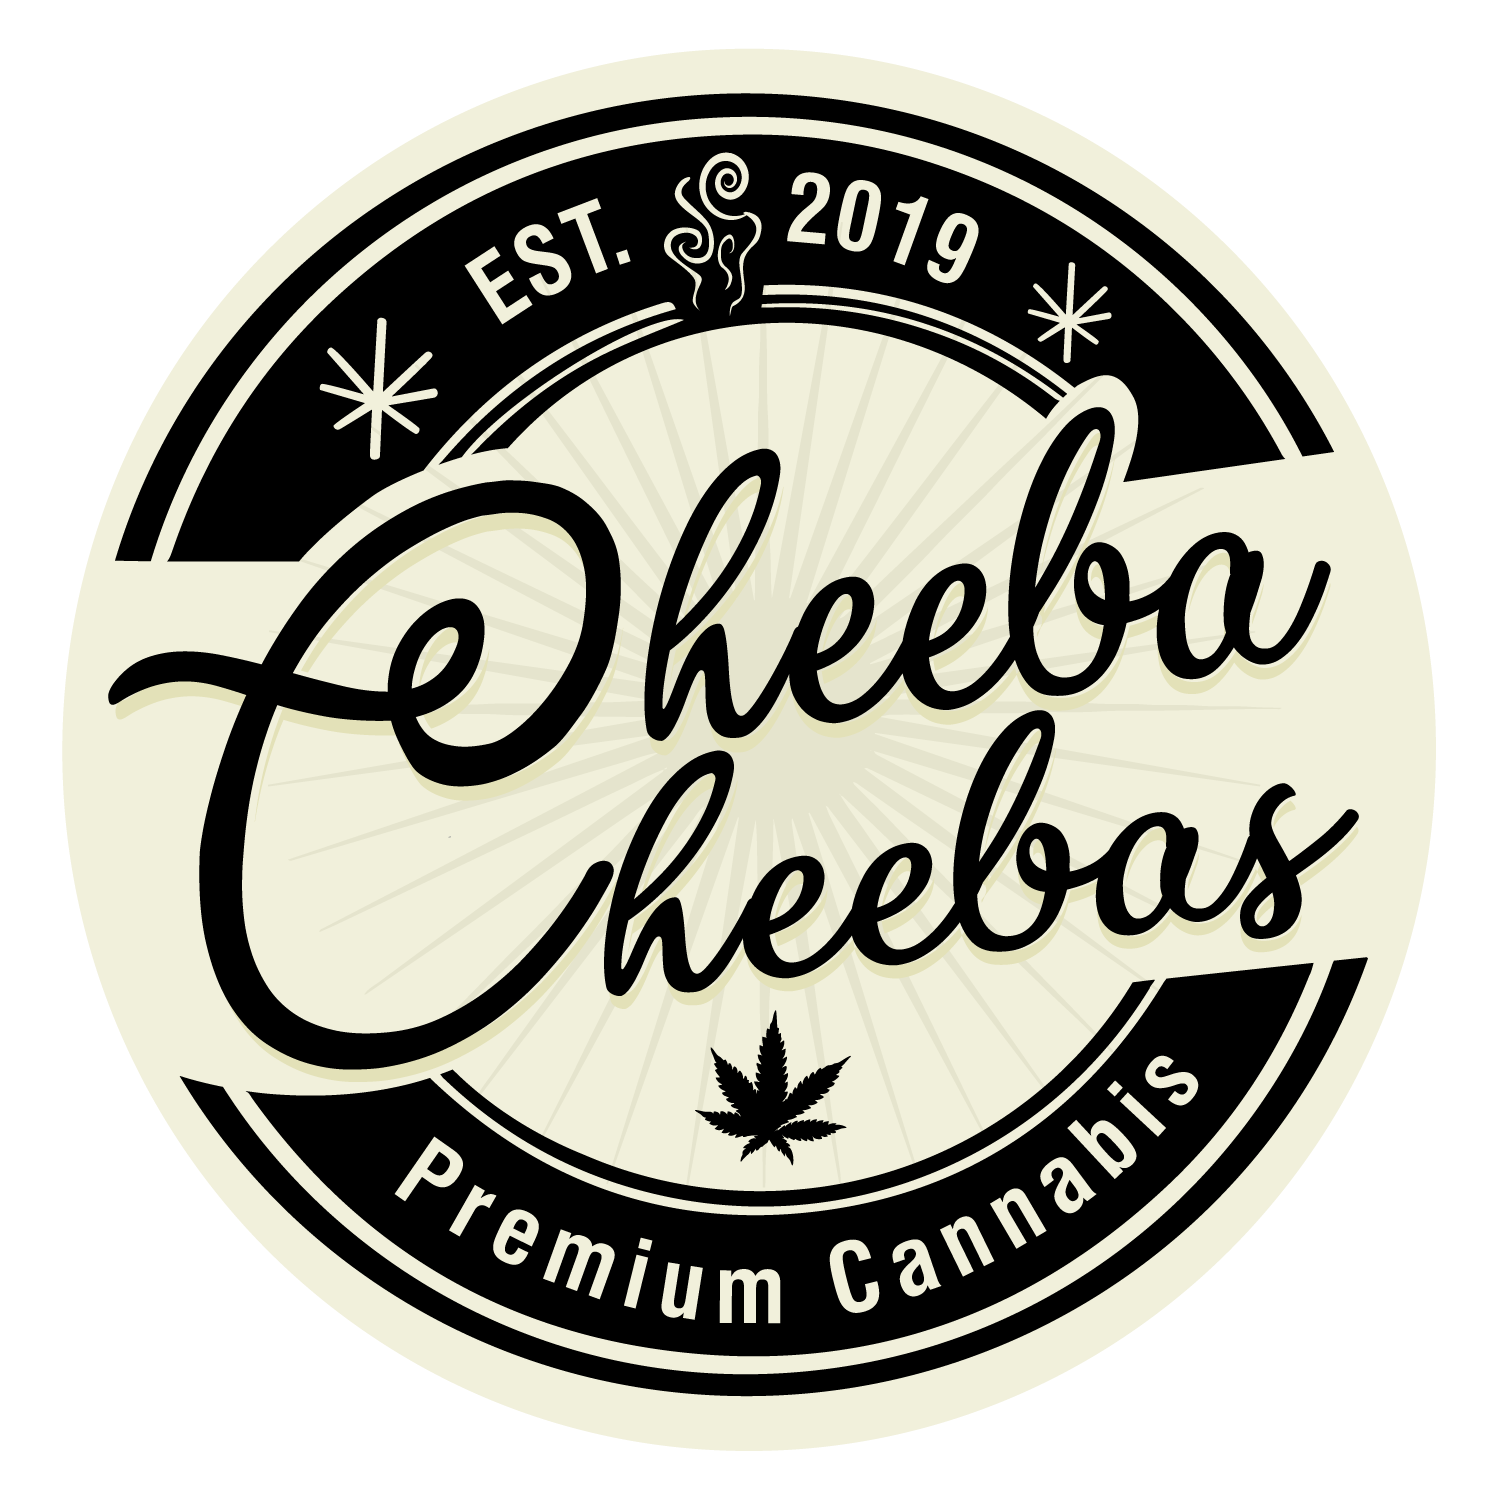 Cheeba Cheeba - Premium Cannabis Dispensary Logo